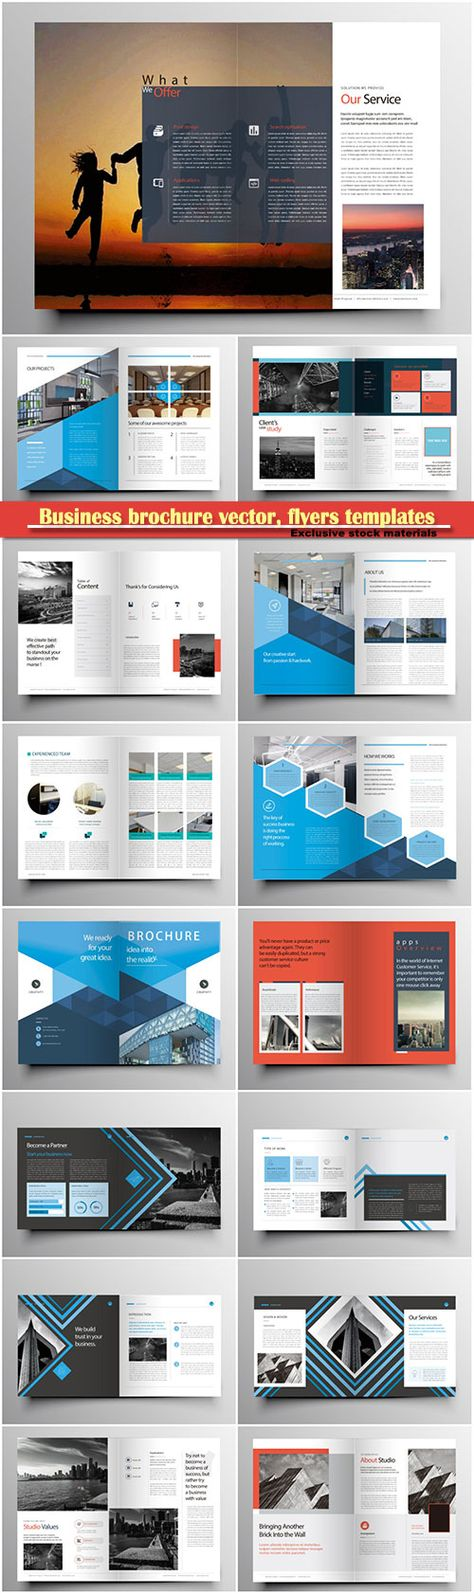 Download Business brochure vector flyers templates report cover - business pamphlet templates